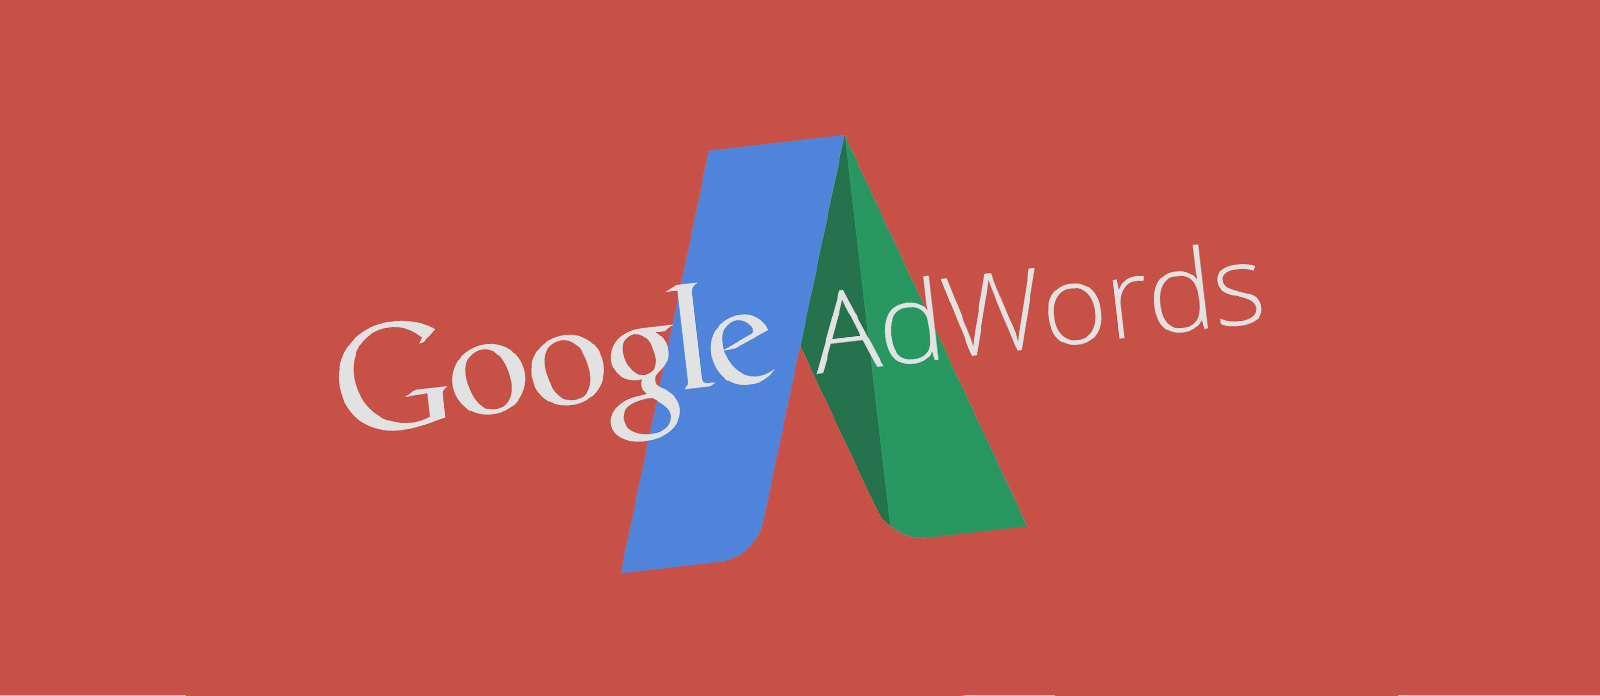 Google AdWords offers six attribution models